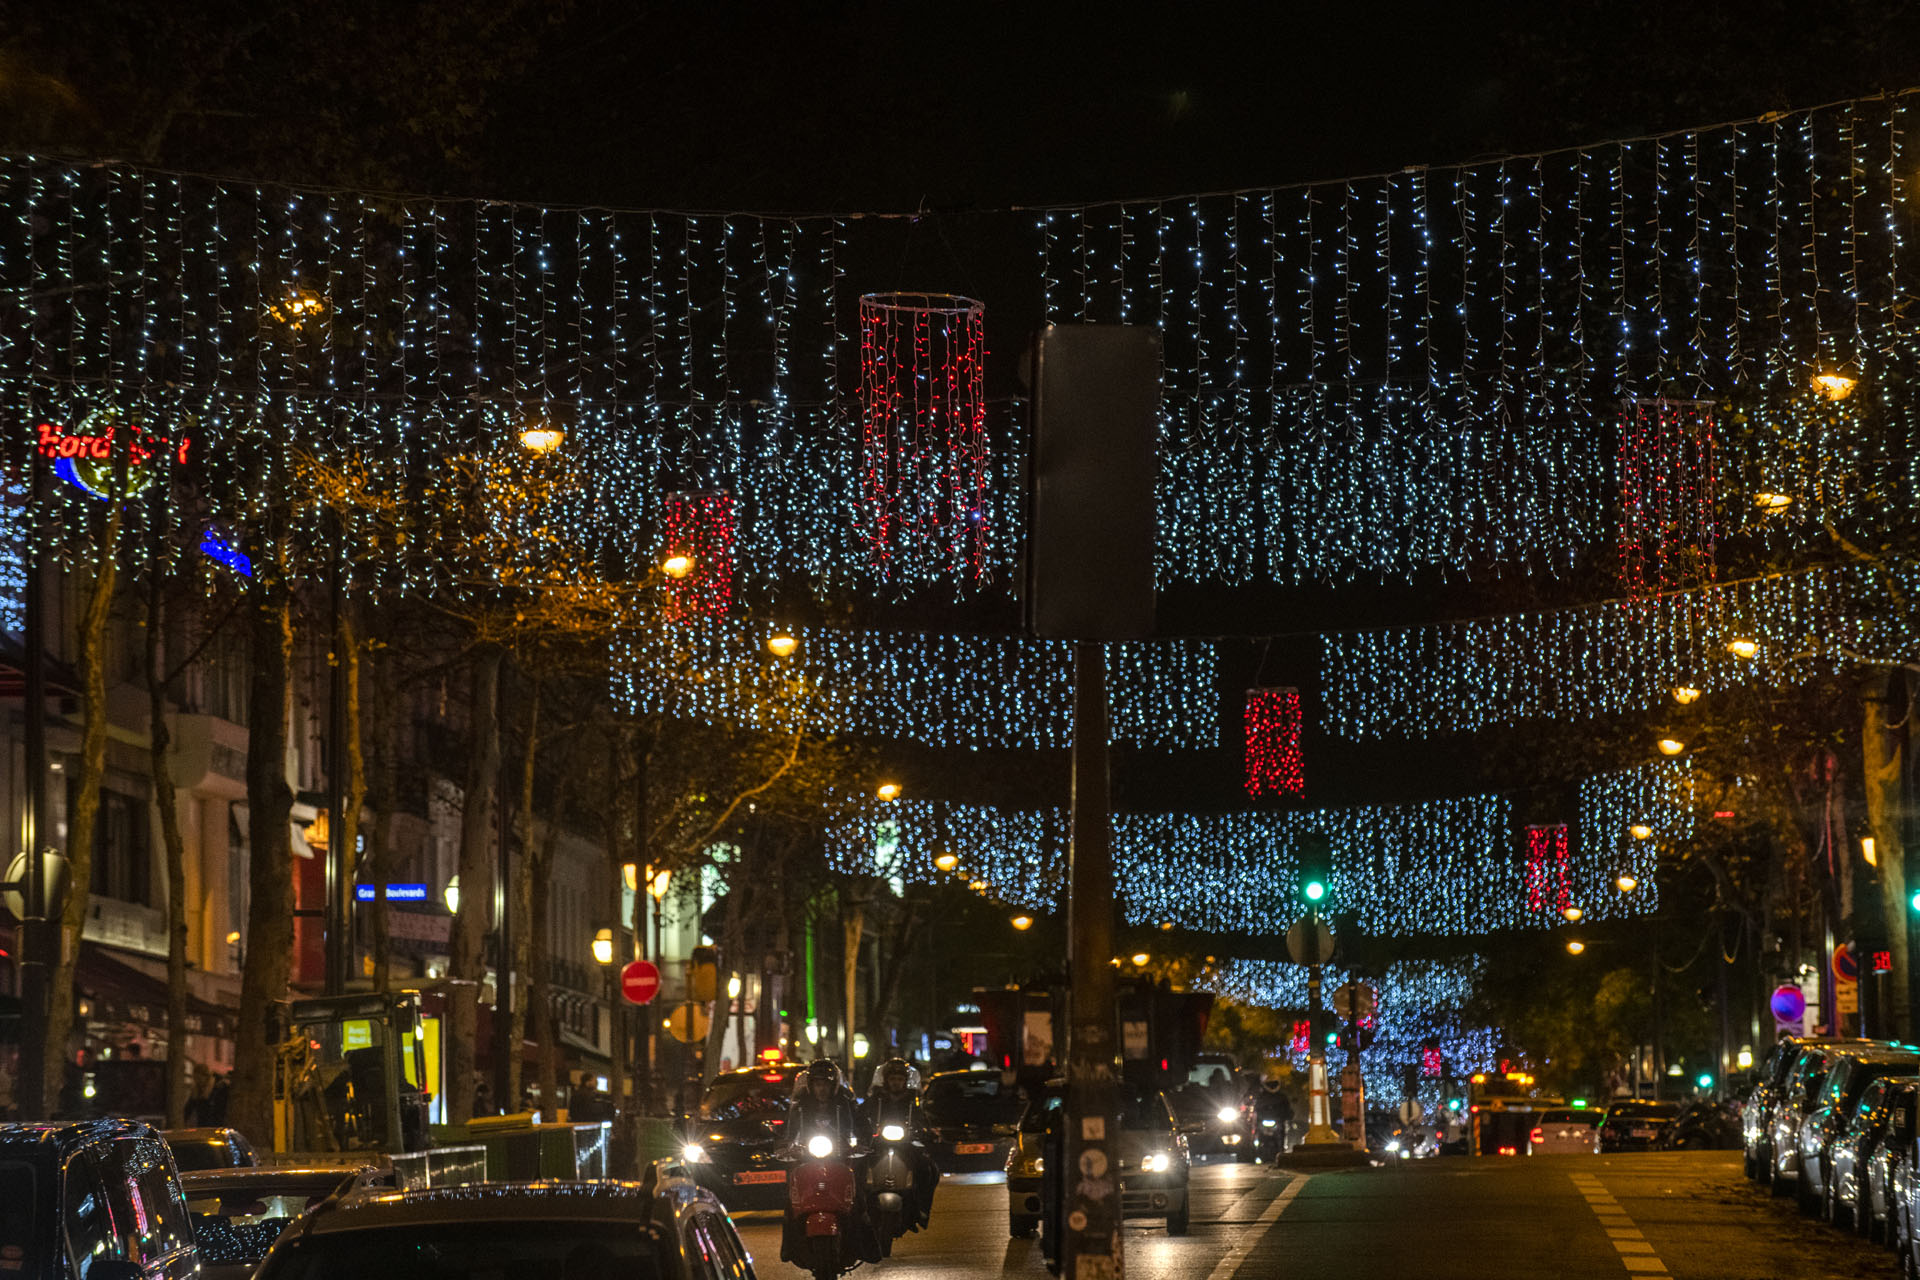 Inauguration des Illuminations de Noël des Grands Boulevards 2018 2019